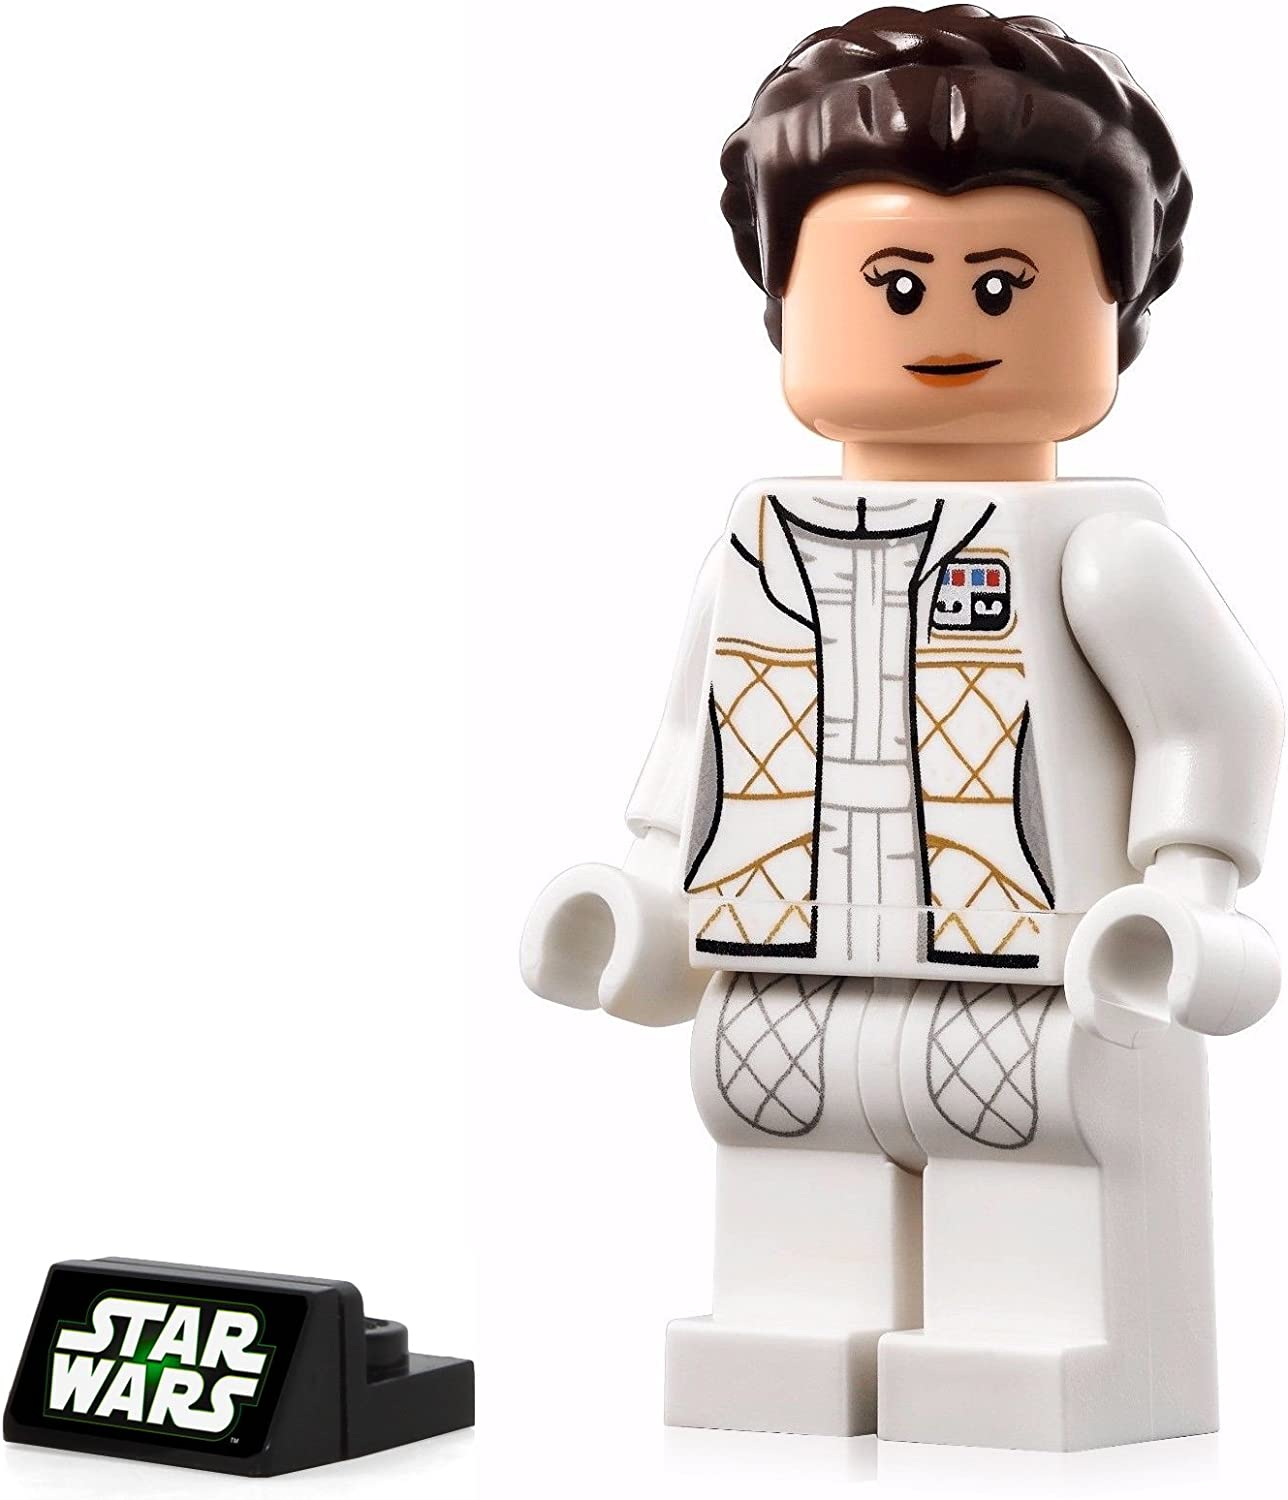 LEGO Star Wars MiniFigure - Princess Leia (Carrie Fisher) from Millennium Falcon 75192